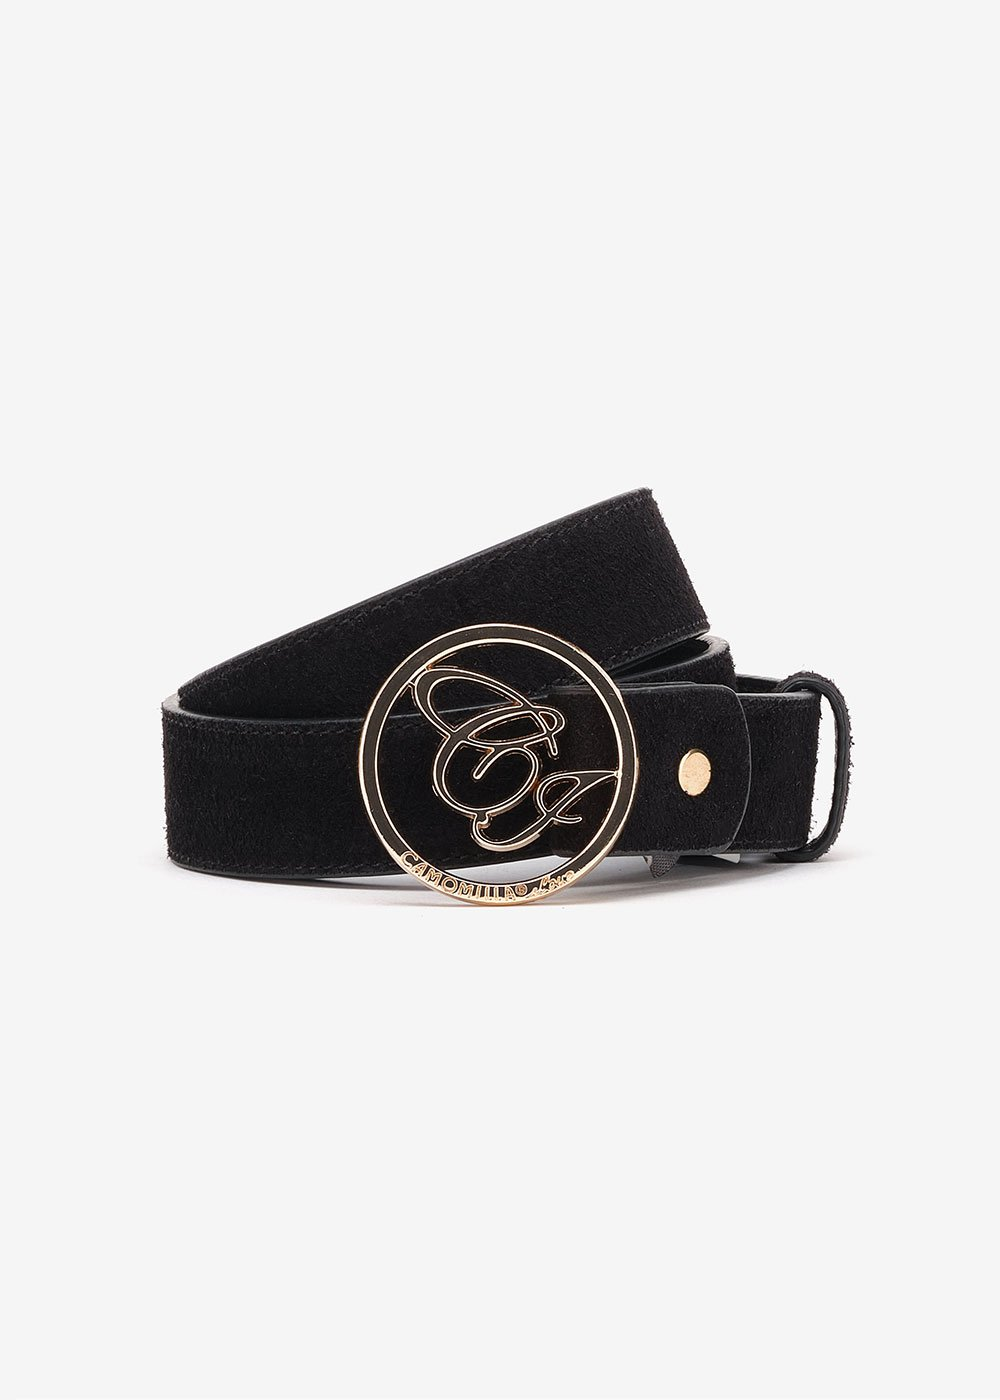 Candys suede belt with CI logo - Black - Woman